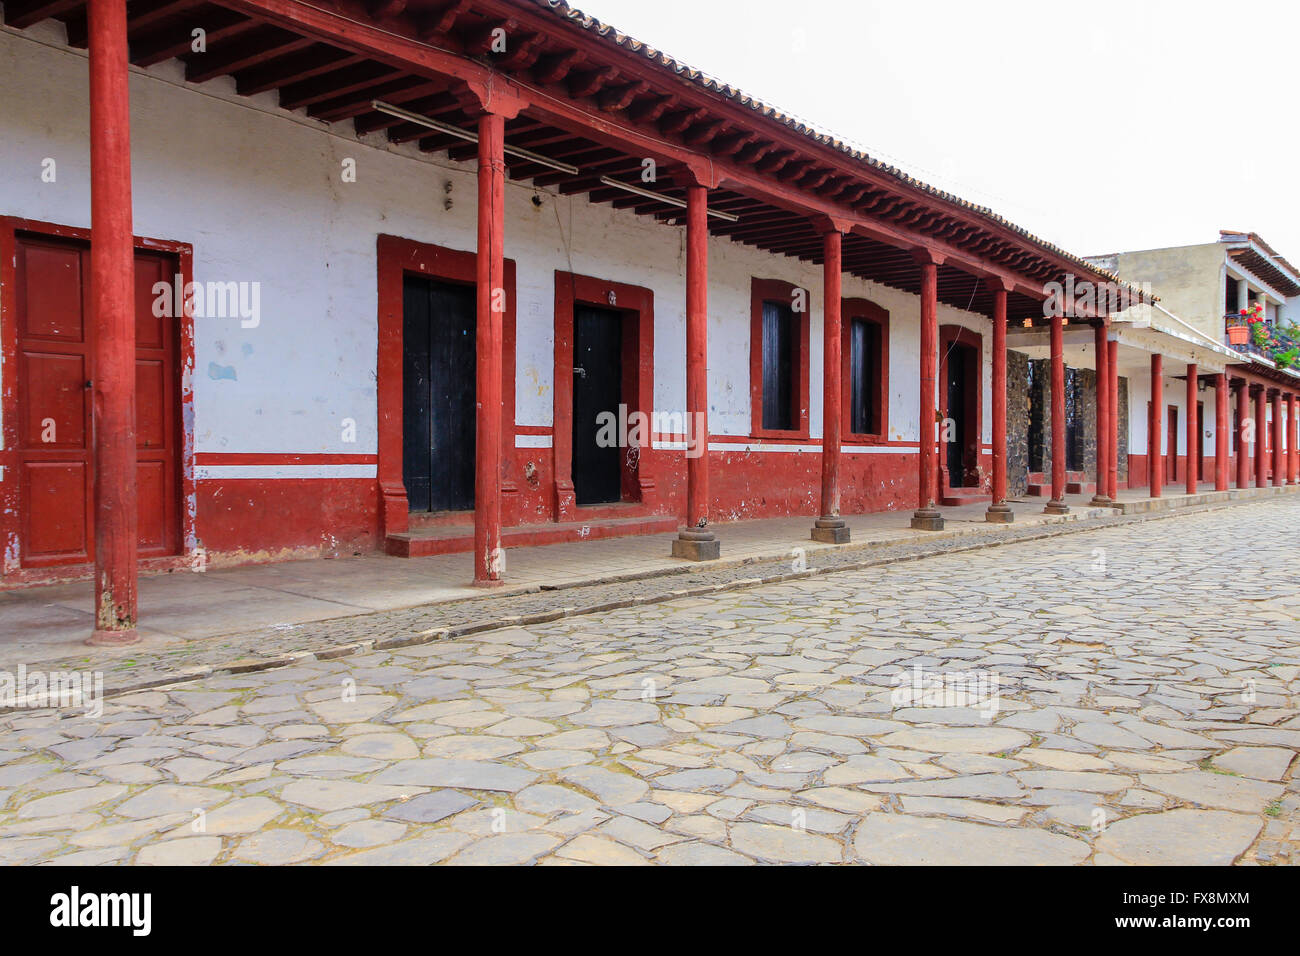 An empty plaza with a row of colorful columns in Tzintzuntzan, Michoacan, Mexico - Stock Image